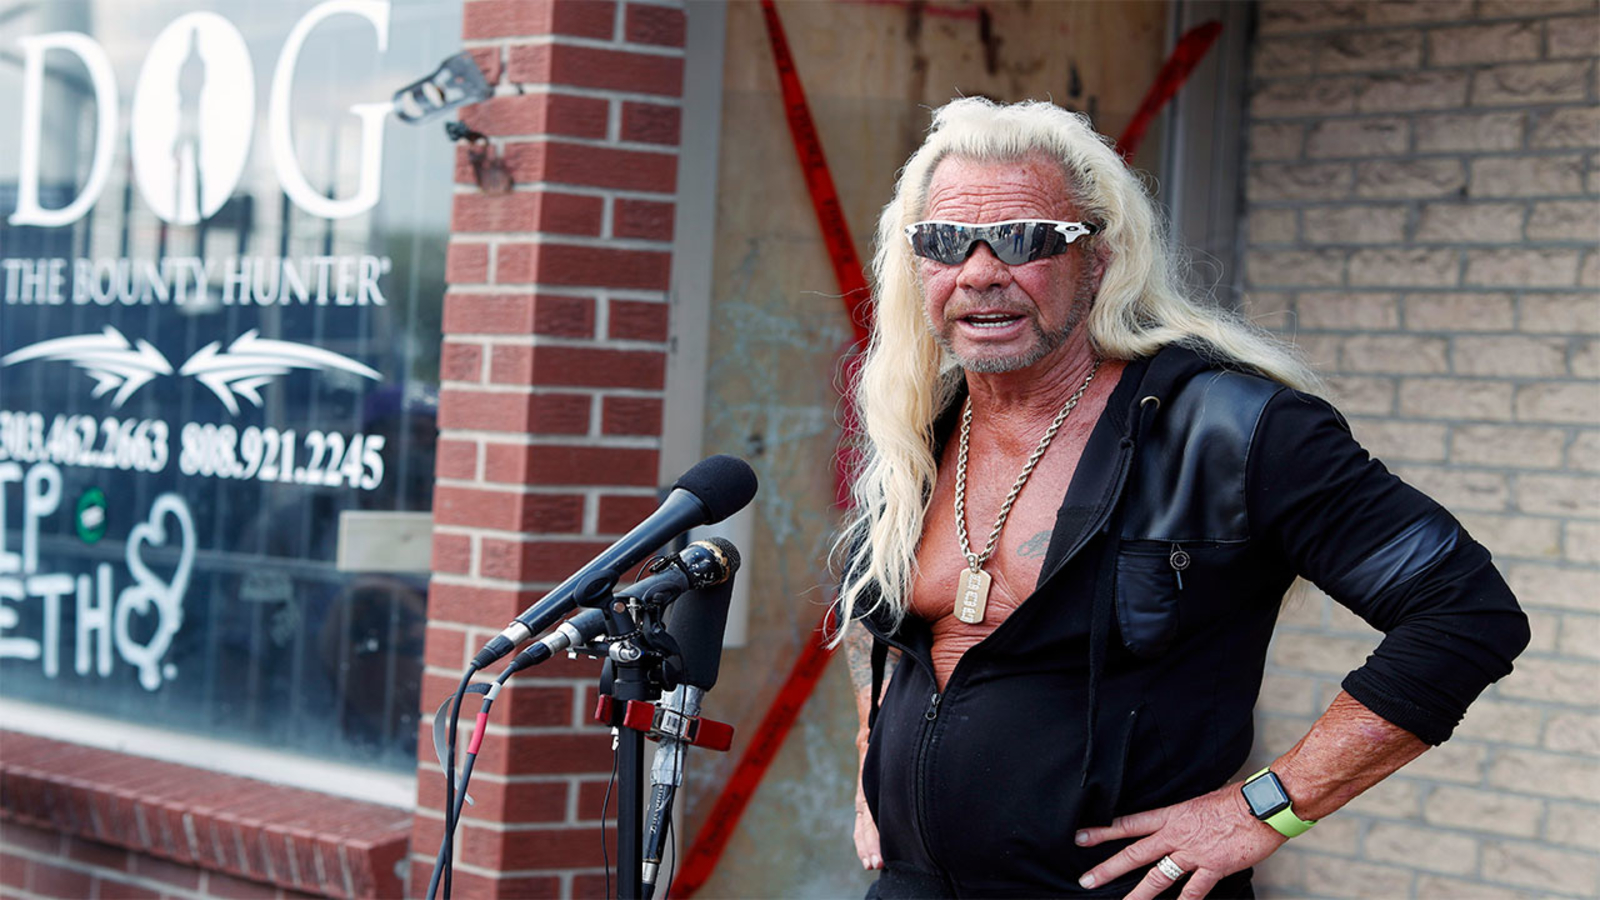 Dog The Bounty Hunter S Edgewater Colorado Store Burglarized